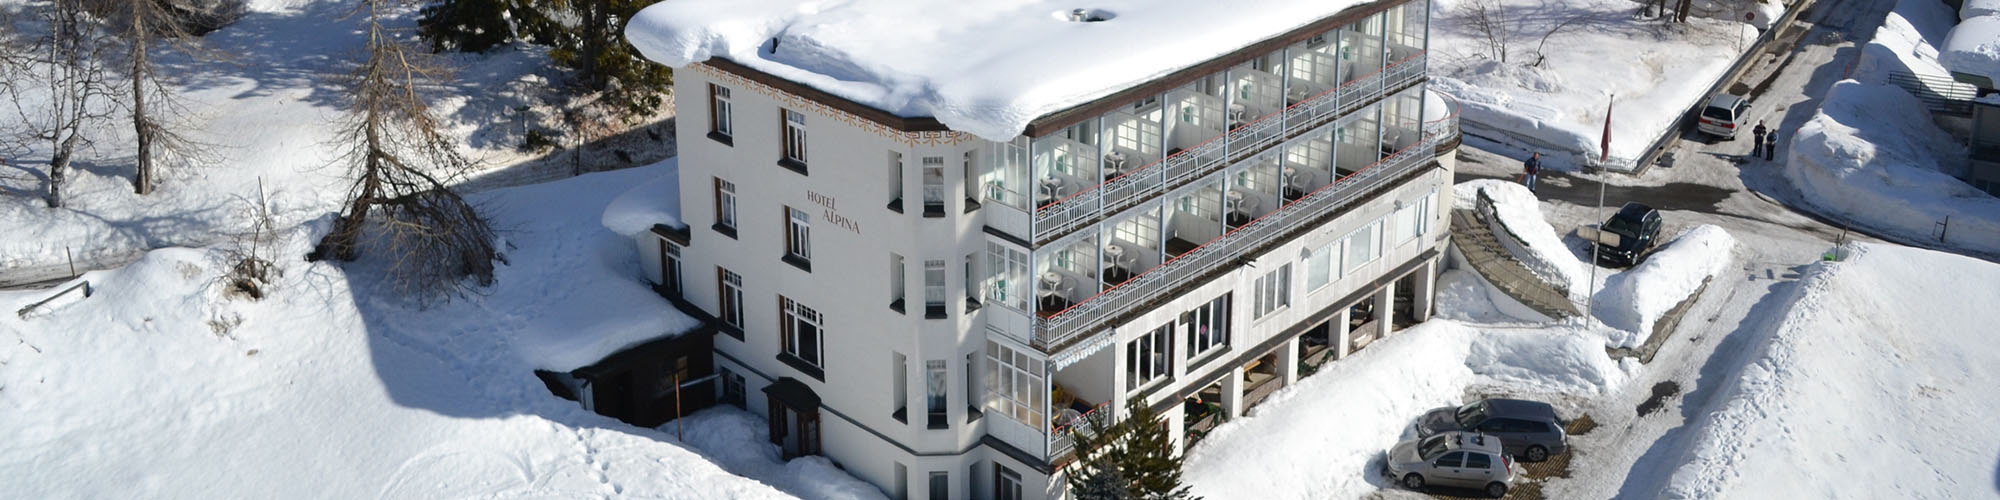 Hotel Davos - An bester Lage - in Davos